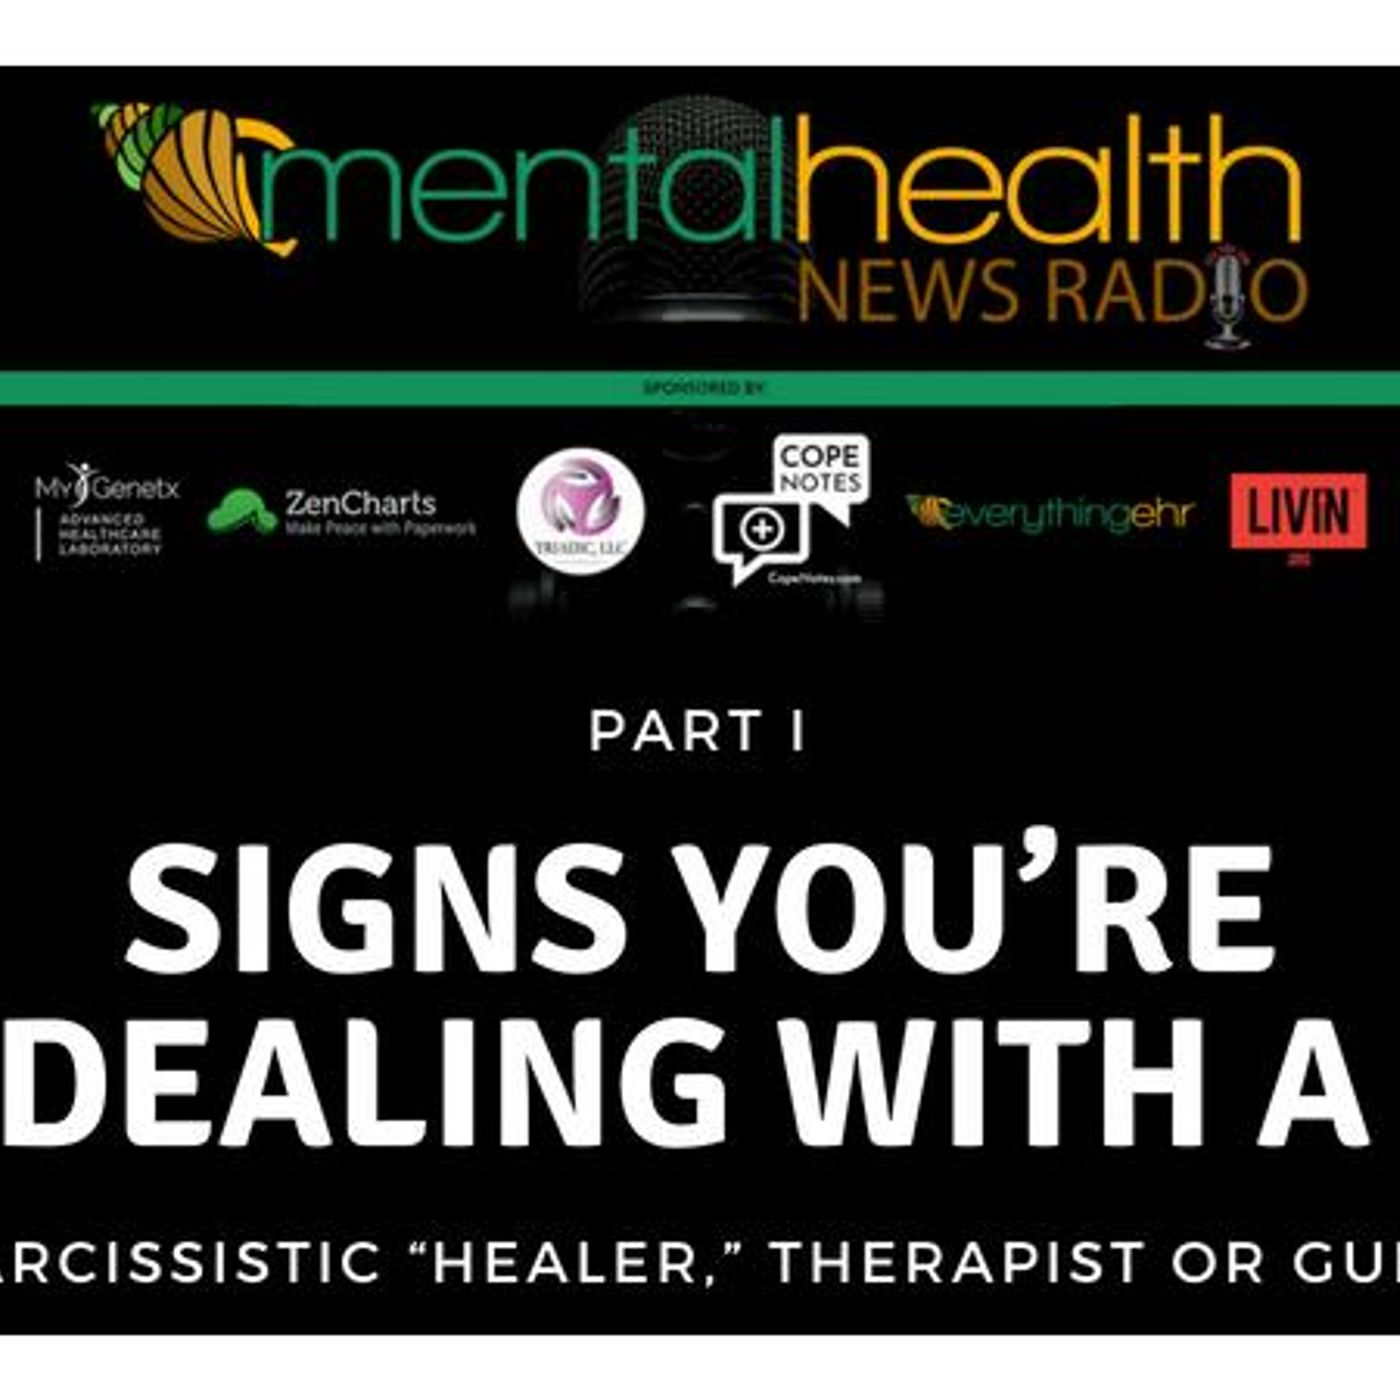 """Mental Health News Radio - SIGNS YOU'RE DEALING WITH A NARCISSISTIC """"HEALER,"""" THERAPIST OR GURU PART I"""